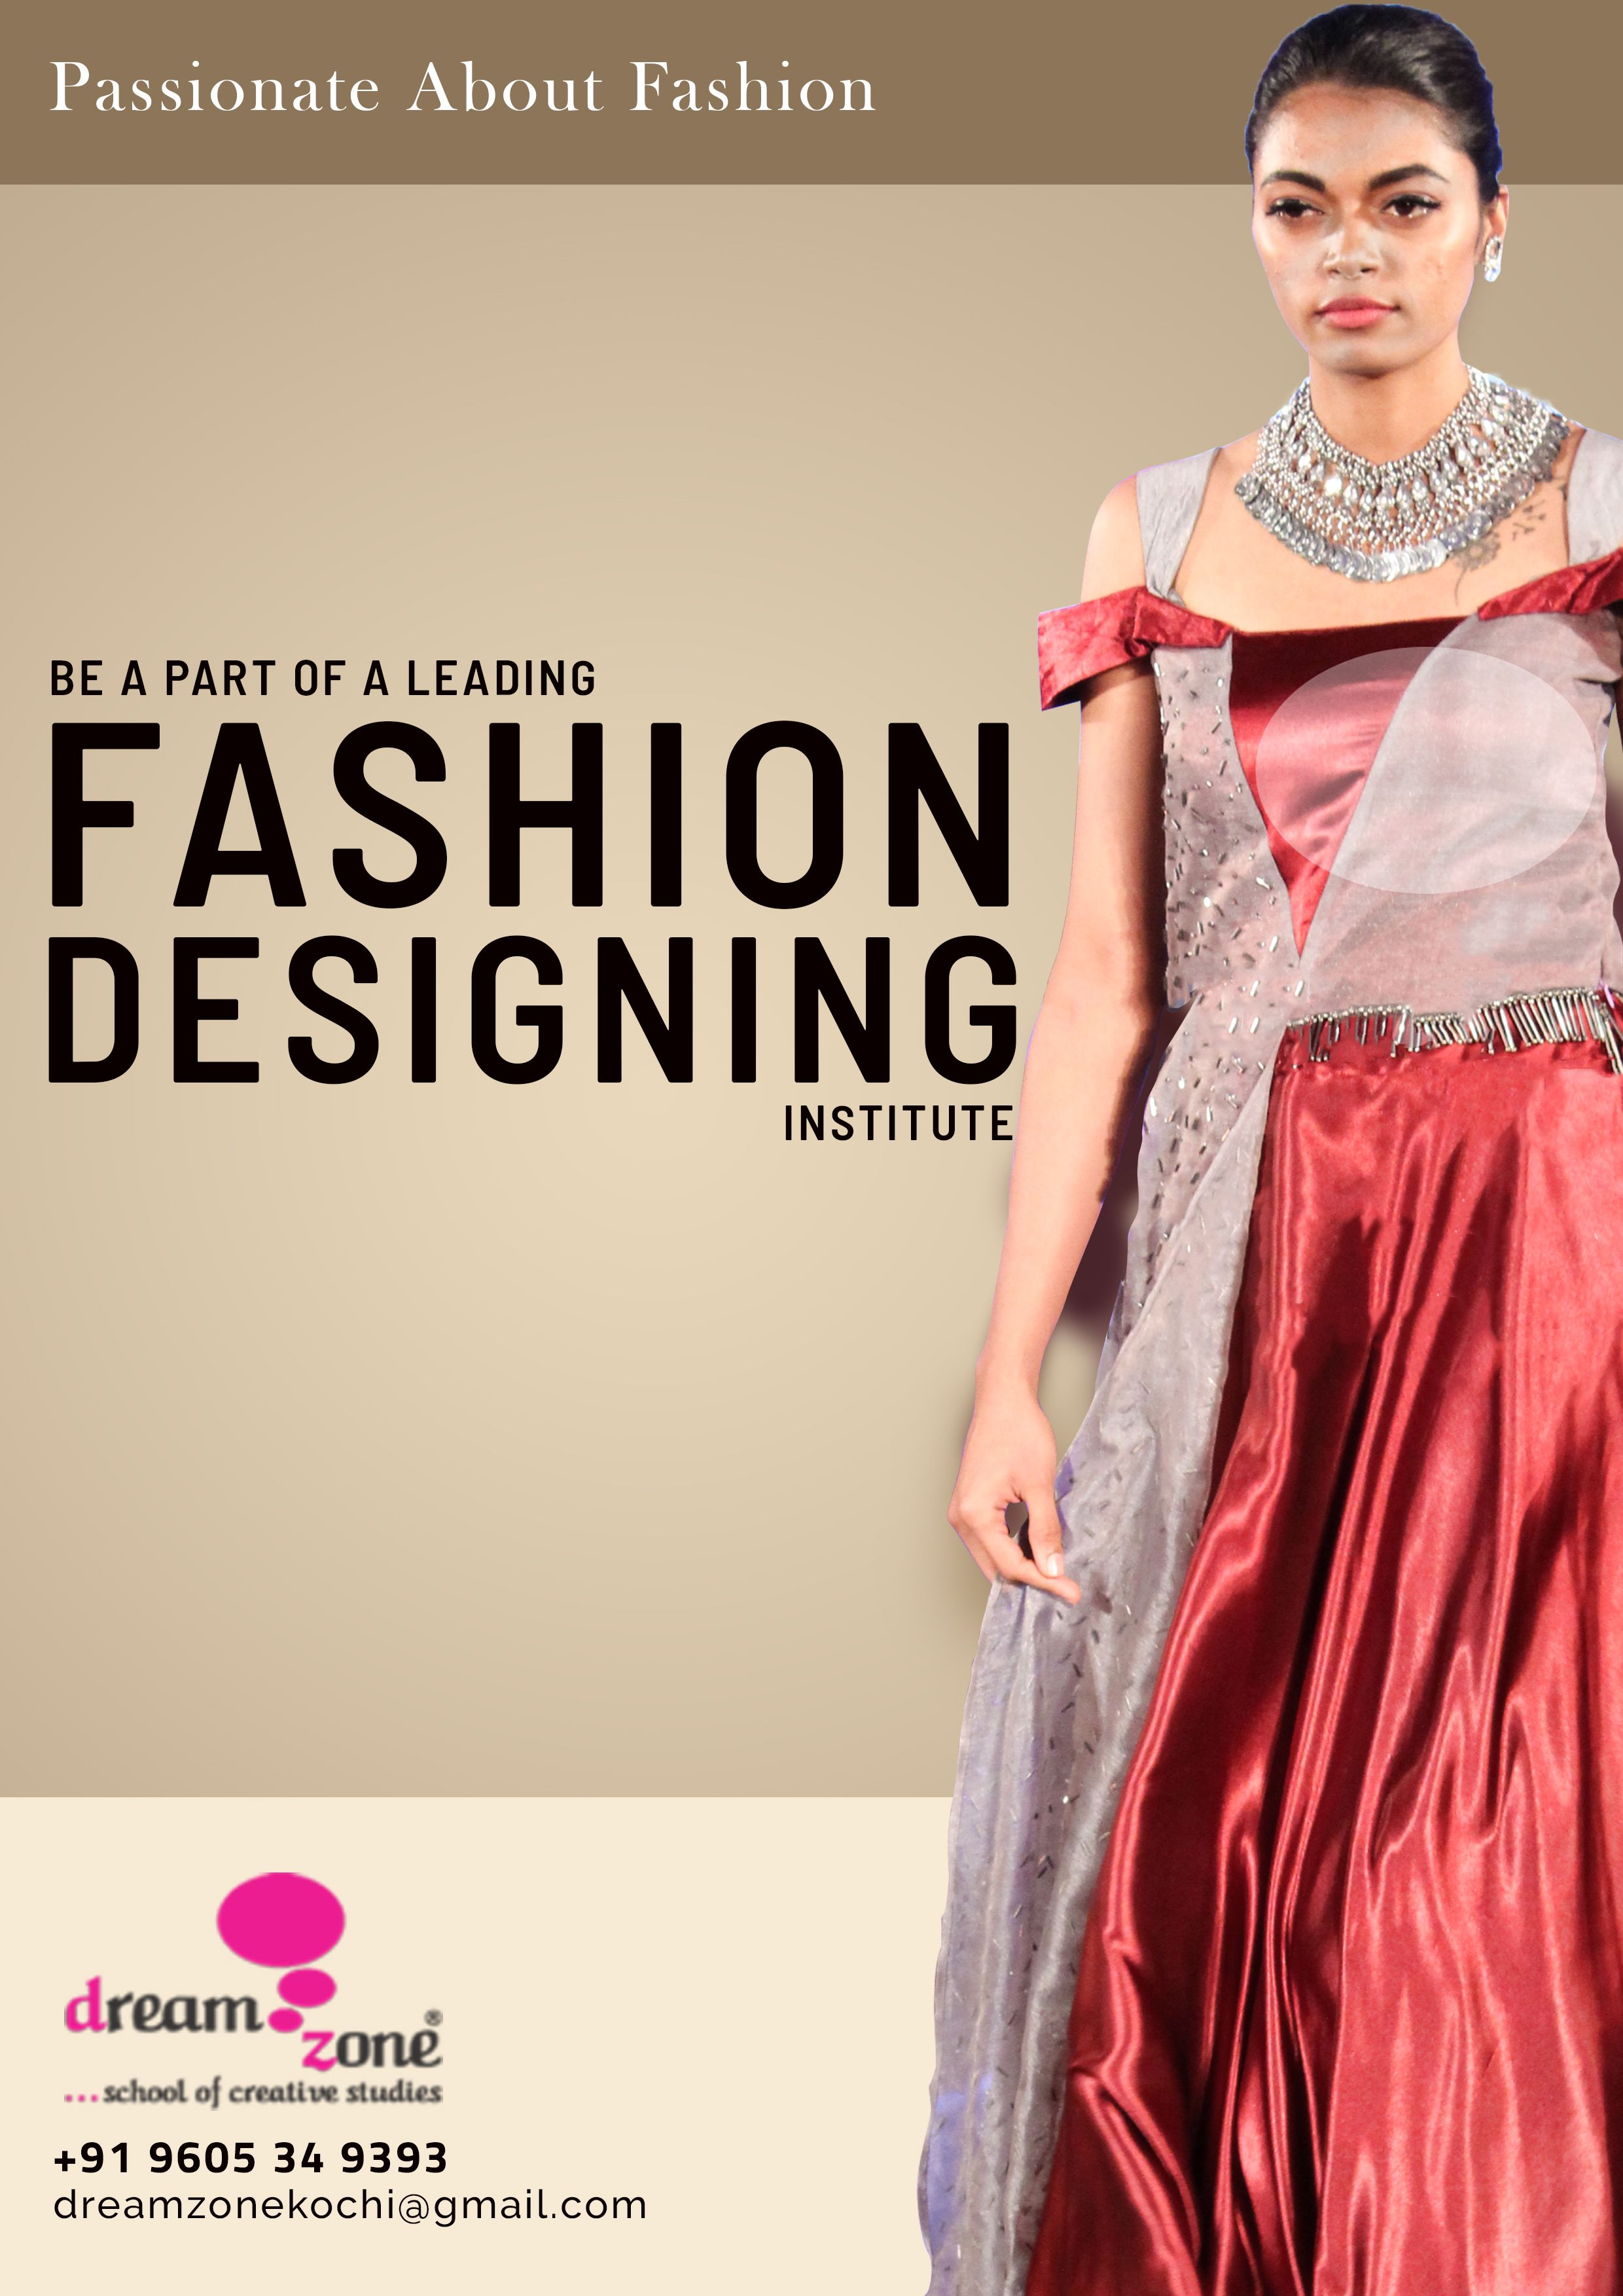 We Provide Practical Elements Of Our Courses That Give Students Real World Insights Into How They Can Succeed In Fash With Images Fashion Designing Institute Fashion Design